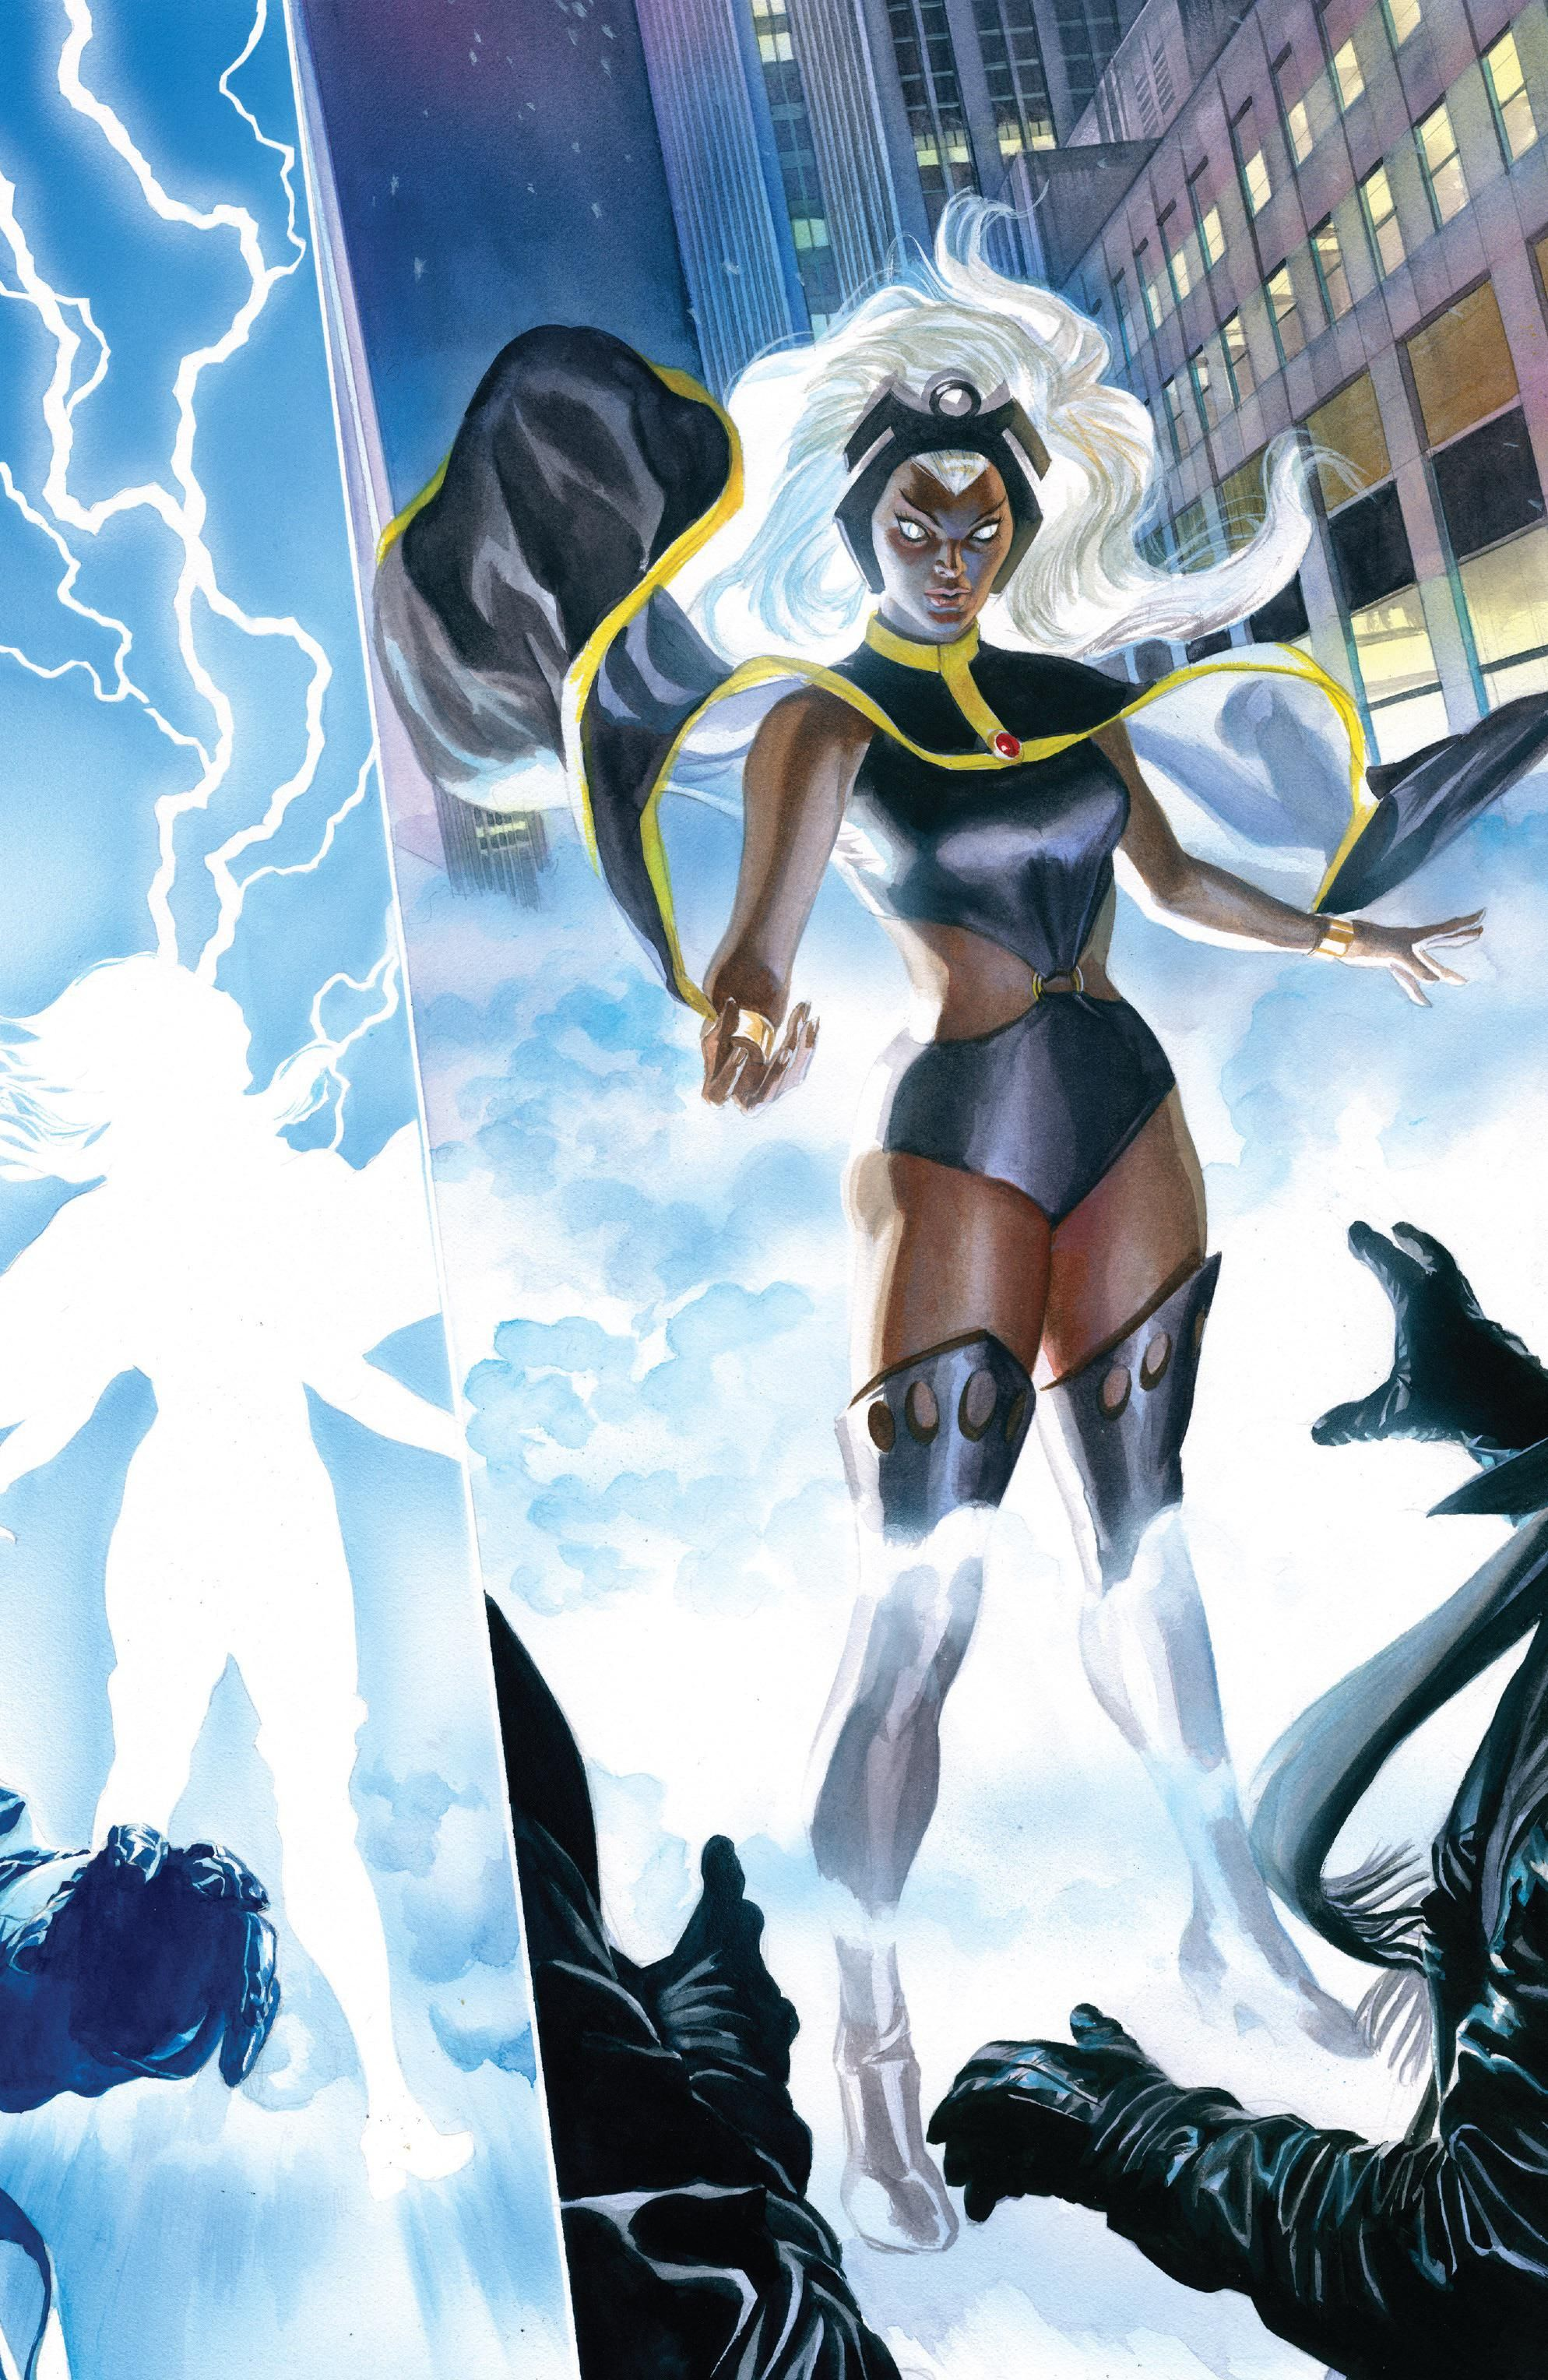 Electric full page spread of Storms shocking transformation from Marvels: Epilogues retelling of X-